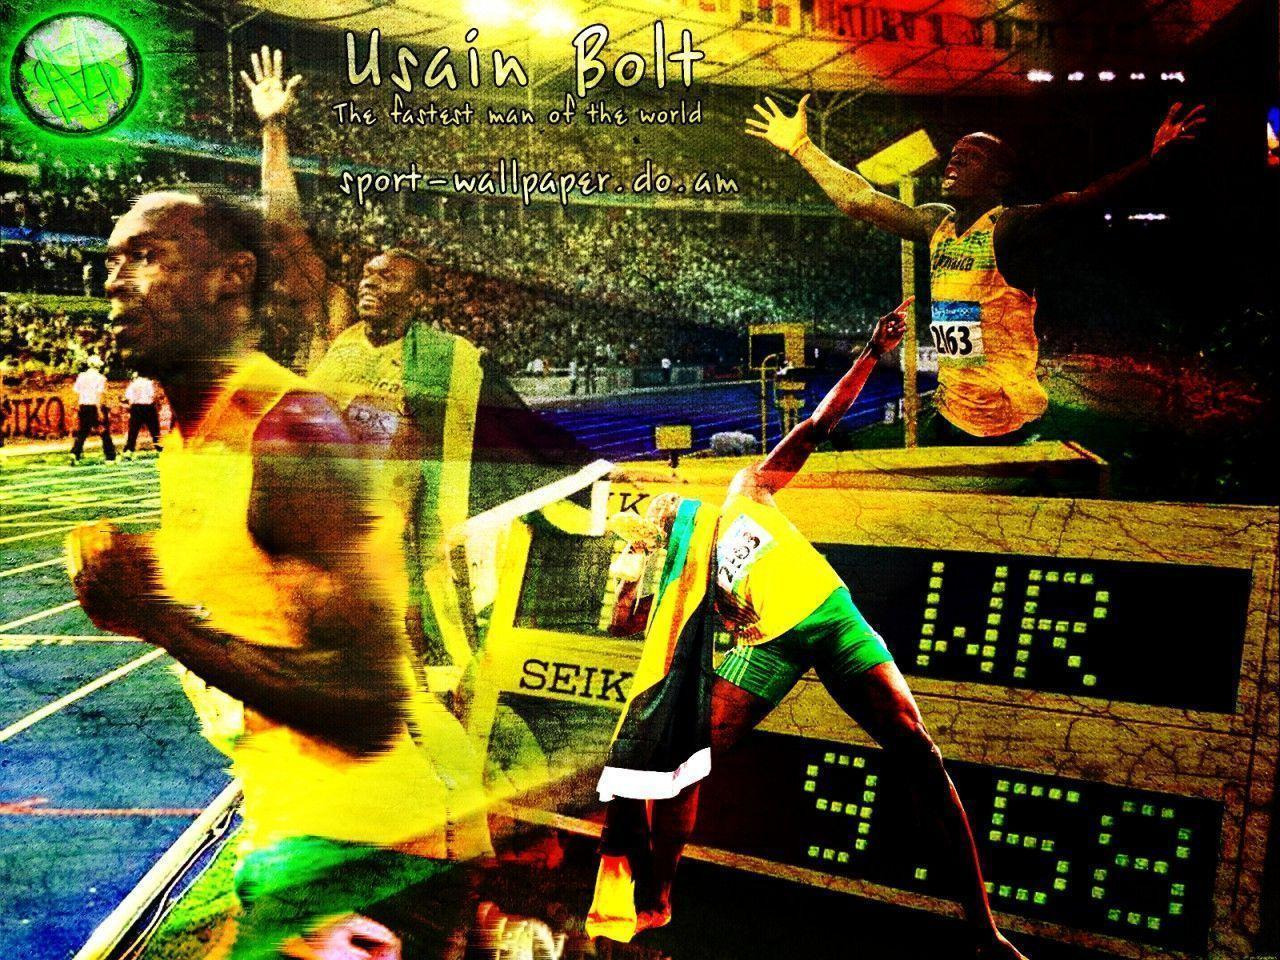 Usain Bolt wallpaper by WWW.SPORT-WALLPAPER.DO.AM 60023 - Olympics ...